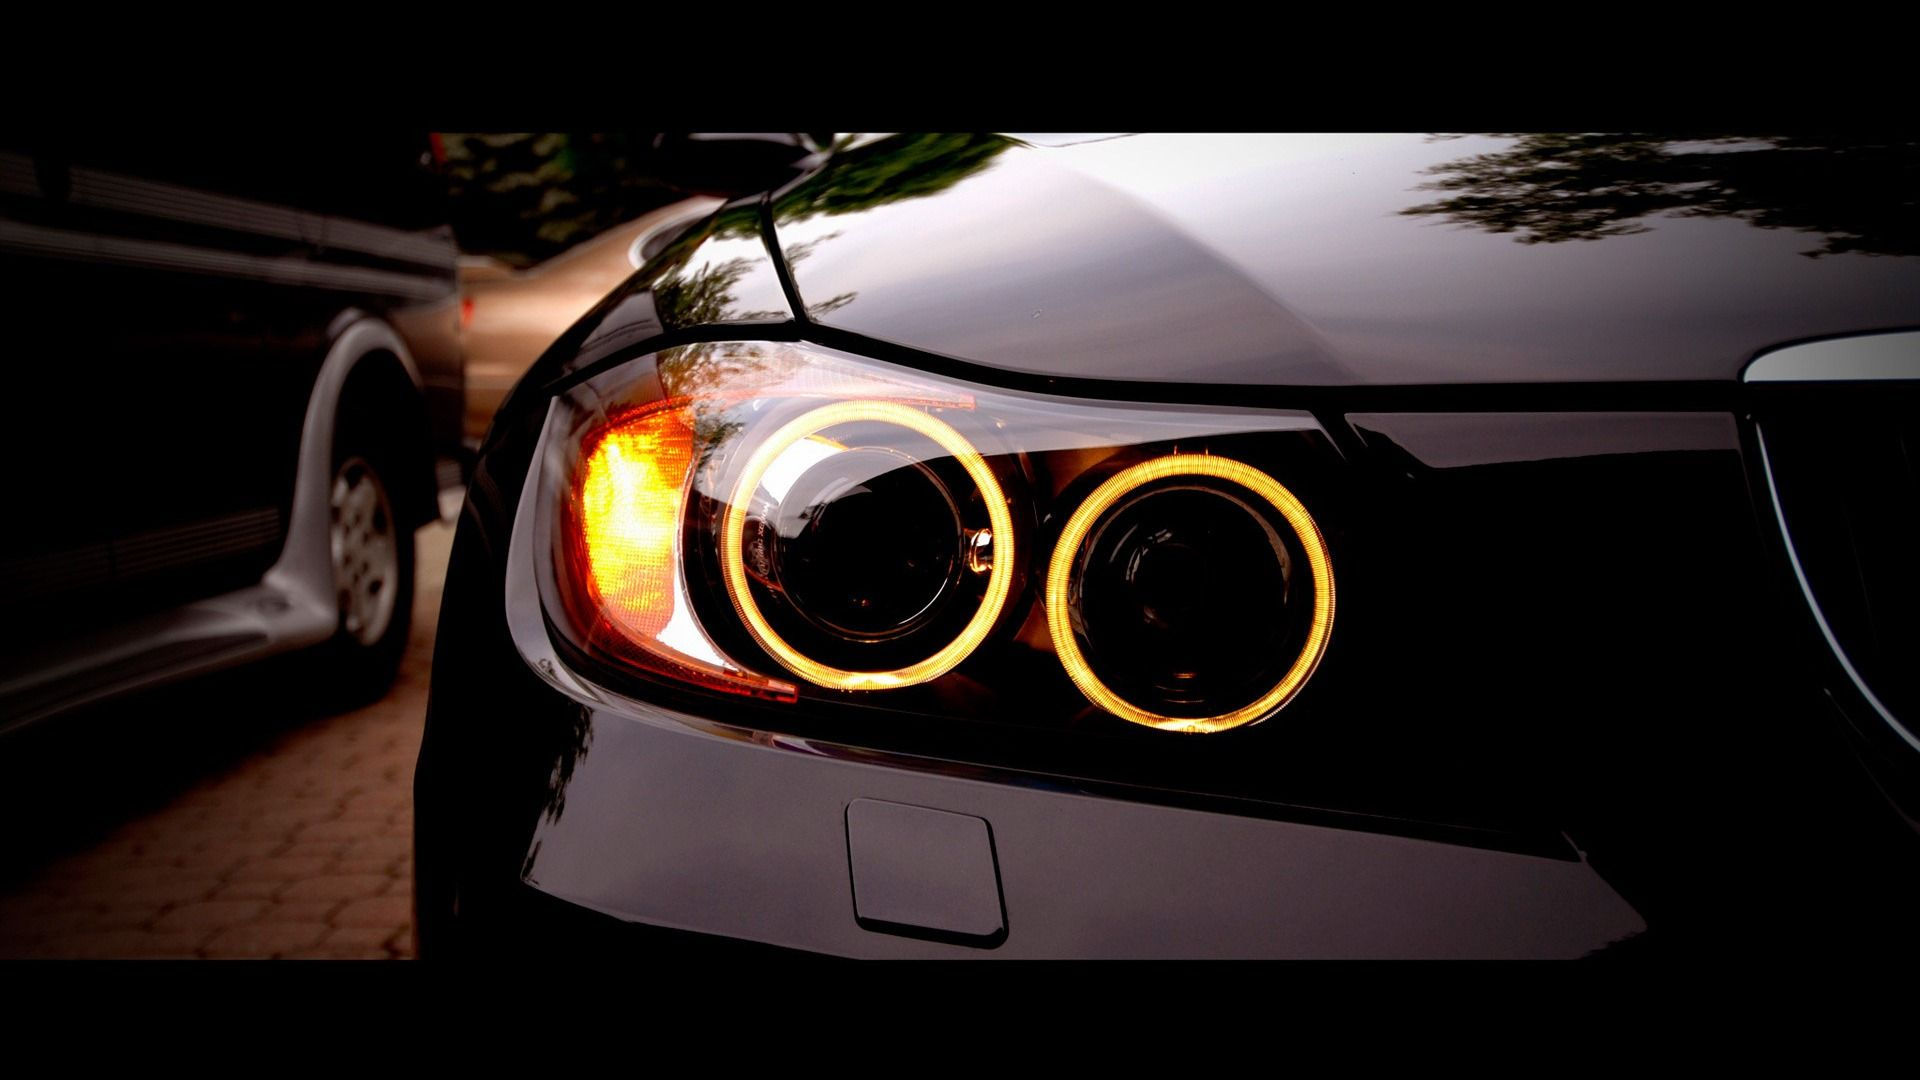 Head Lamp Black Bmw Car Hd Iphone Wallpaper Cars And Automoto